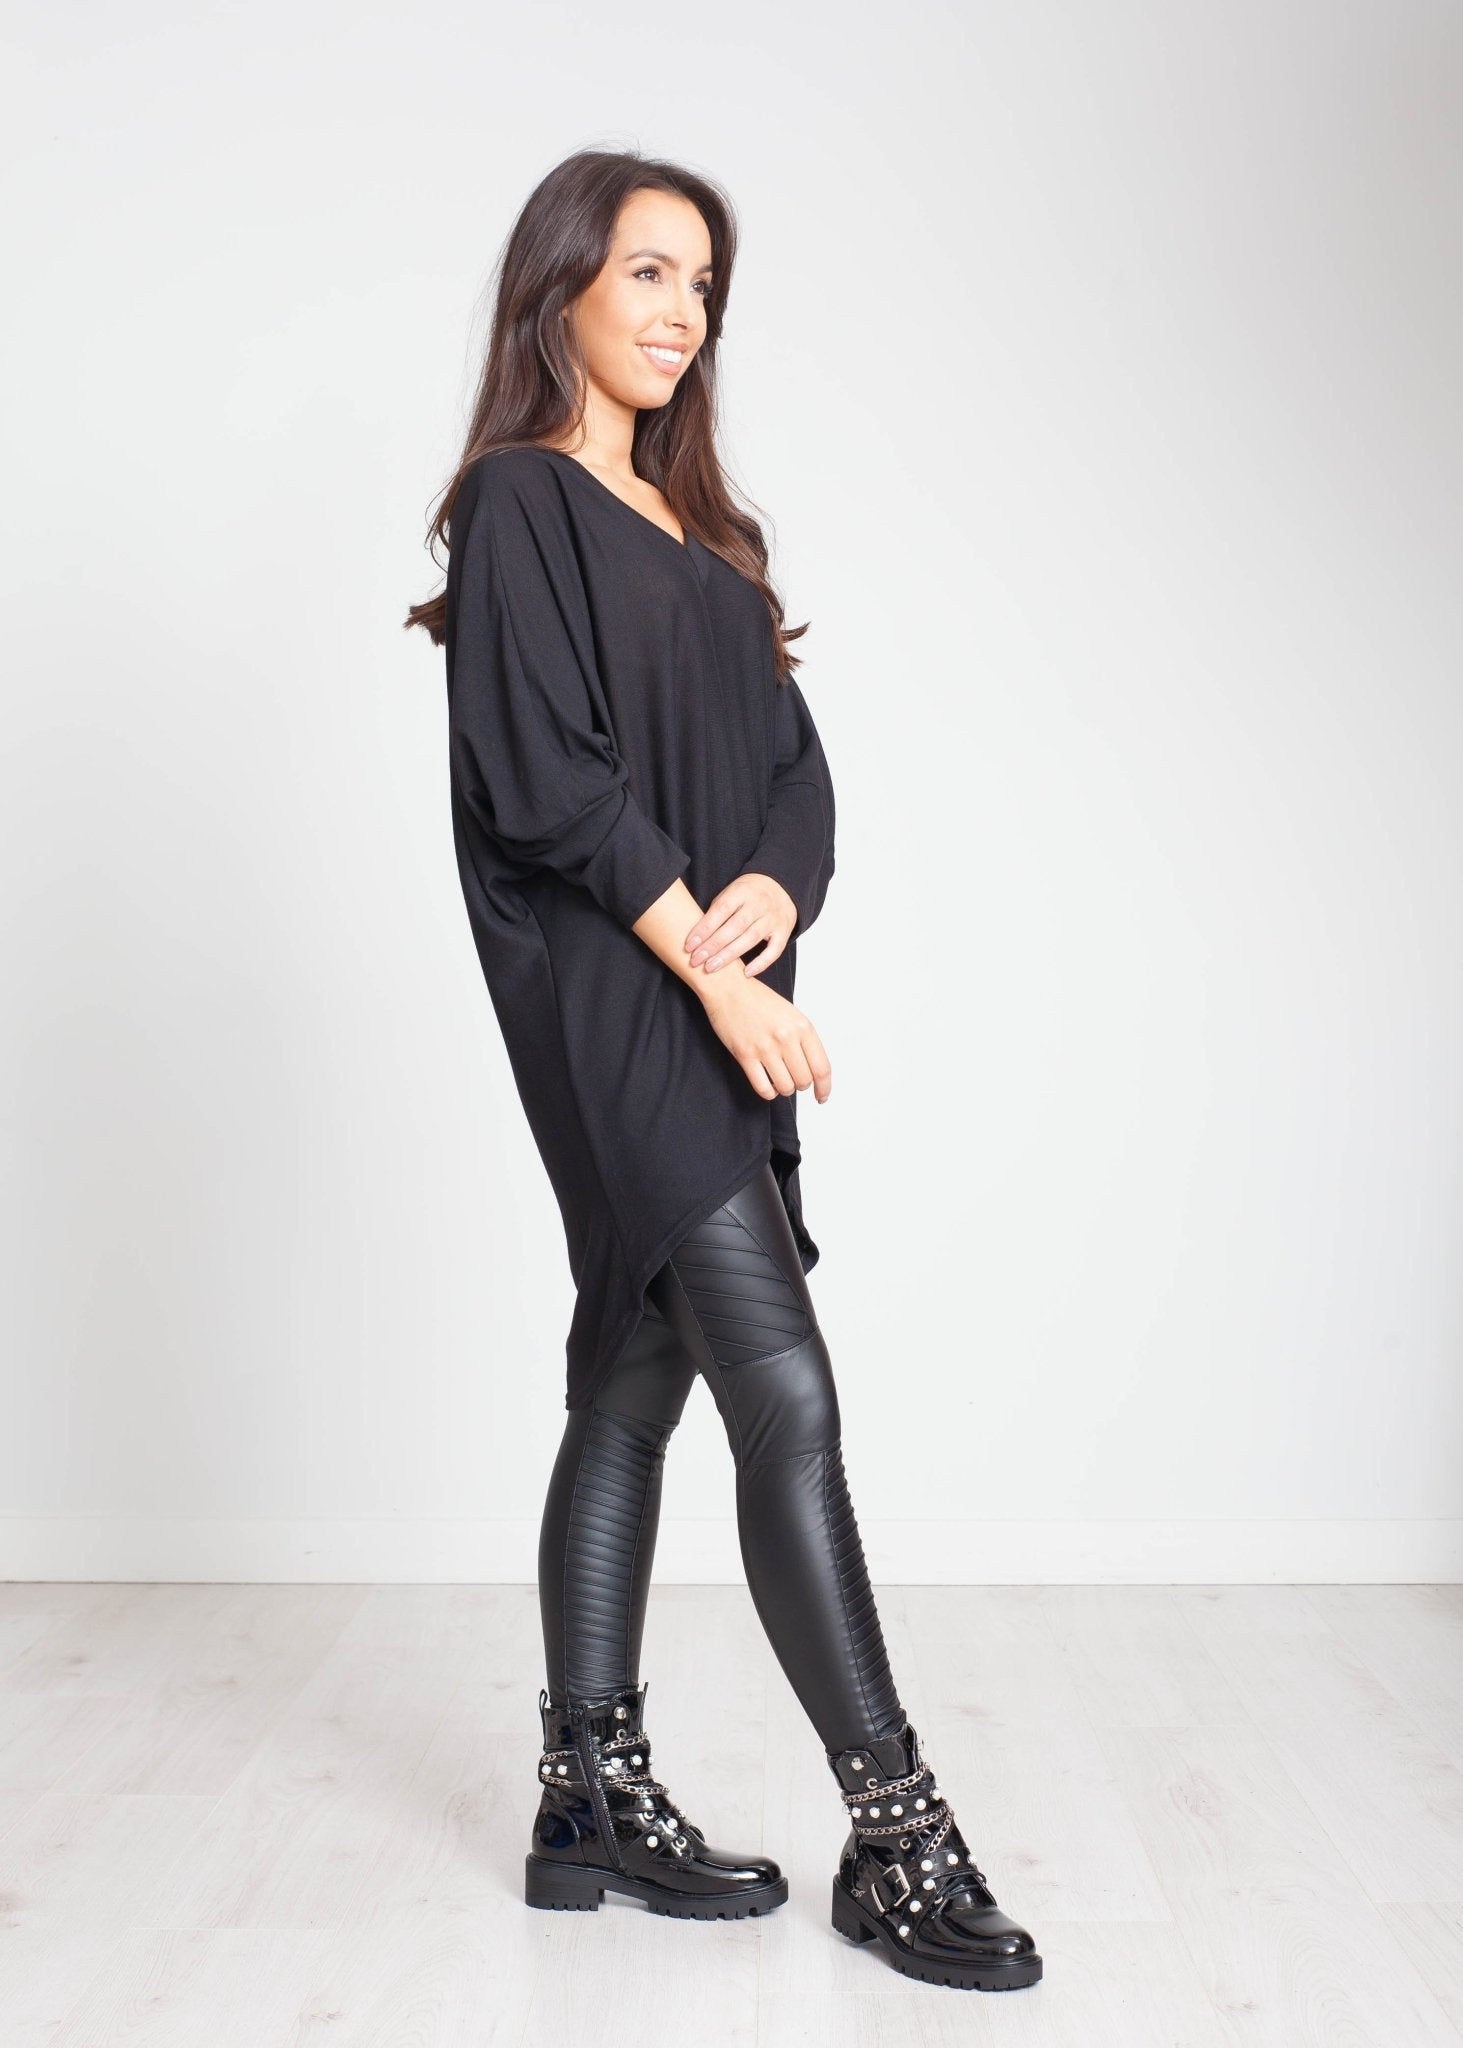 Priya Batwing Tunic In Black - The Walk in Wardrobe